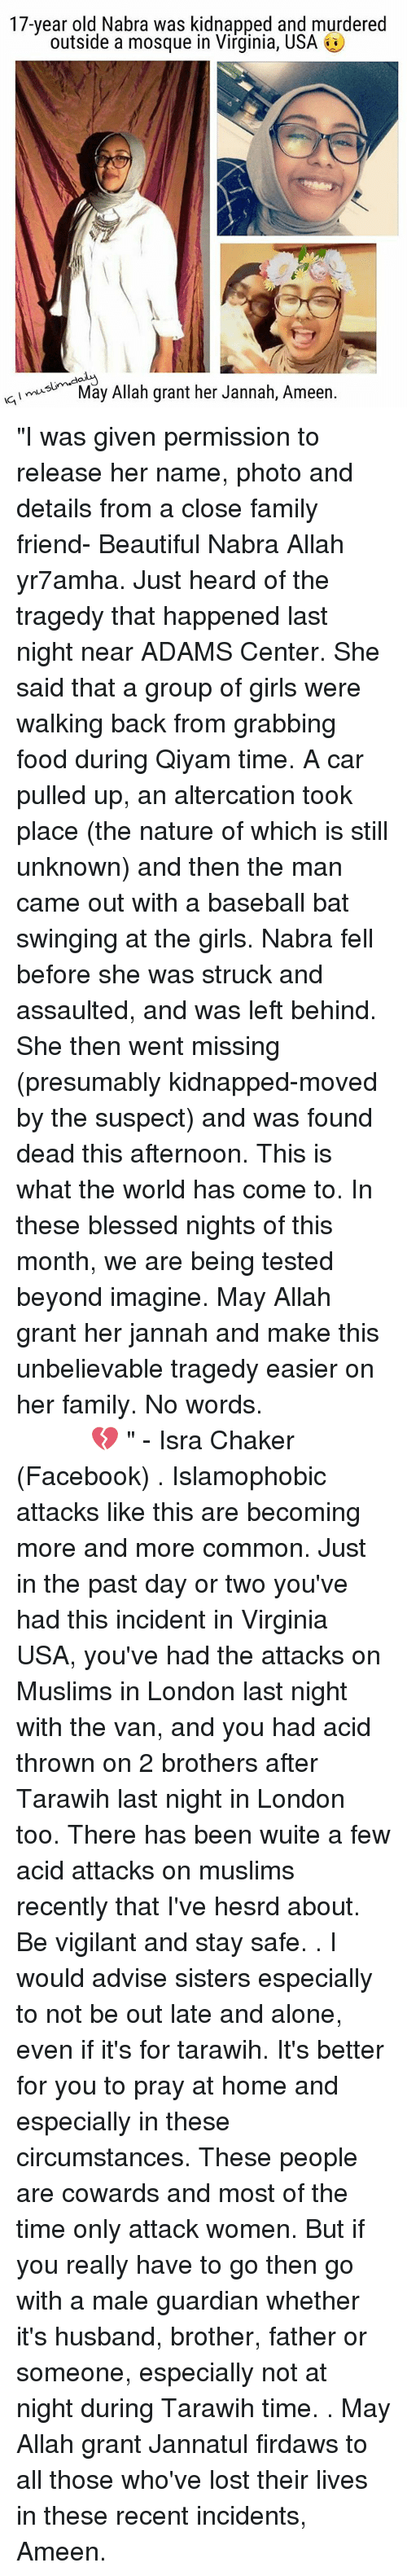 """altercation: 17-year old Nabra was kidnapped and murdered  outside a mosque in Virginia, USA  muslim d  Allah grant her Jannah, Ameen.  May I ic, """"I was given permission to release her name, photo and details from a close family friend- Beautiful Nabra Allah yr7amha. Just heard of the tragedy that happened last night near ADAMS Center. She said that a group of girls were walking back from grabbing food during Qiyam time. A car pulled up, an altercation took place (the nature of which is still unknown) and then the man came out with a baseball bat swinging at the girls. Nabra fell before she was struck and assaulted, and was left behind. She then went missing (presumably kidnapped-moved by the suspect) and was found dead this afternoon. This is what the world has come to. In these blessed nights of this month, we are being tested beyond imagine. May Allah grant her jannah and make this unbelievable tragedy easier on her family. No words. إنَّا لله وإنا اليه راجعون 💔 """" - Isra Chaker (Facebook) . Islamophobic attacks like this are becoming more and more common. Just in the past day or two you've had this incident in Virginia USA, you've had the attacks on Muslims in London last night with the van, and you had acid thrown on 2 brothers after Tarawih last night in London too. There has been wuite a few acid attacks on muslims recently that I've hesrd about. Be vigilant and stay safe. . I would advise sisters especially to not be out late and alone, even if it's for tarawih. It's better for you to pray at home and especially in these circumstances. These people are cowards and most of the time only attack women. But if you really have to go then go with a male guardian whether it's husband, brother, father or someone, especially not at night during Tarawih time. . May Allah grant Jannatul firdaws to all those who've lost their lives in these recent incidents, Ameen."""